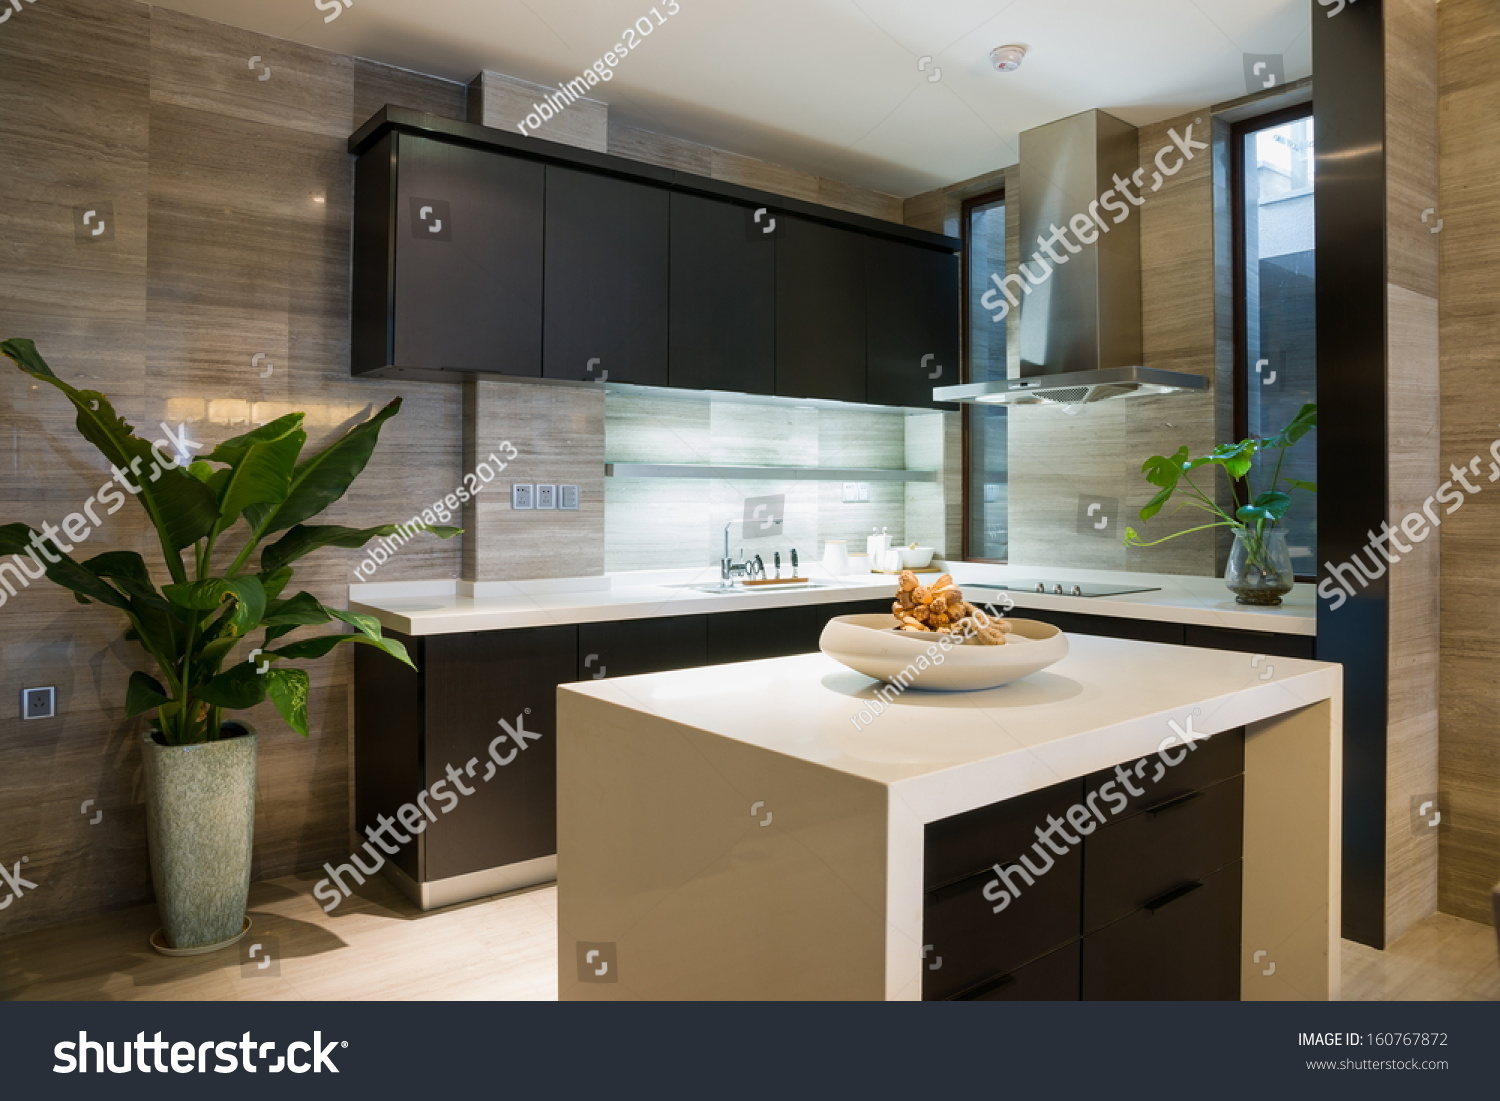 Nice kitchen modern style stock photo 160767872 shutterstock for Nice kitchen pictures